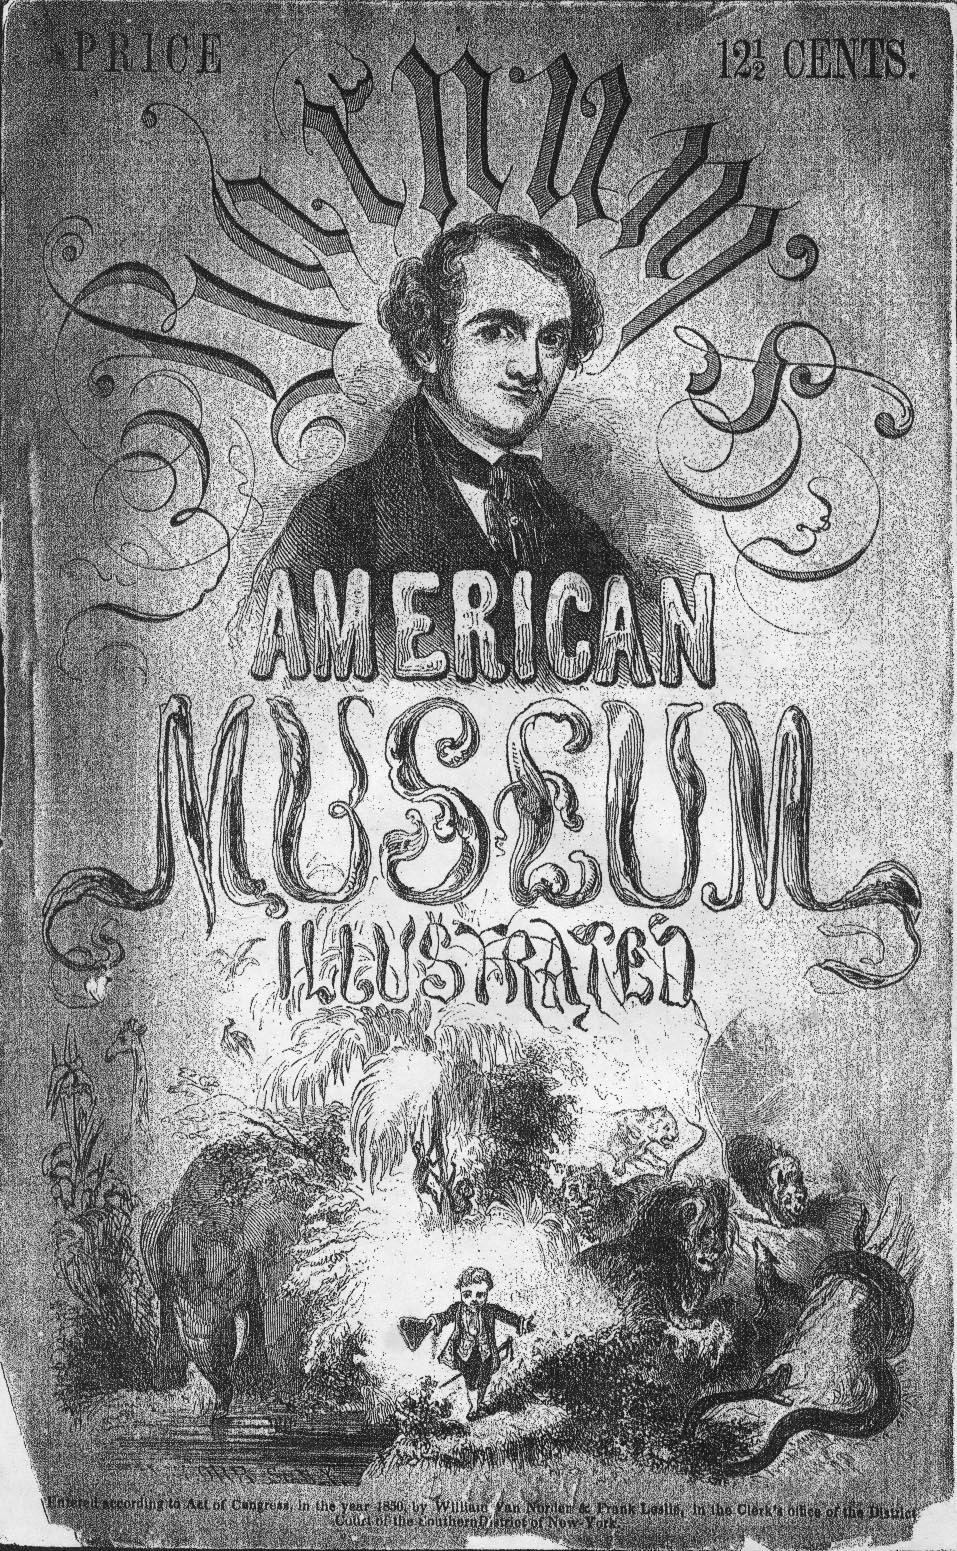 Cover of Barnums 1850 American Museum Illustrated Guide Book